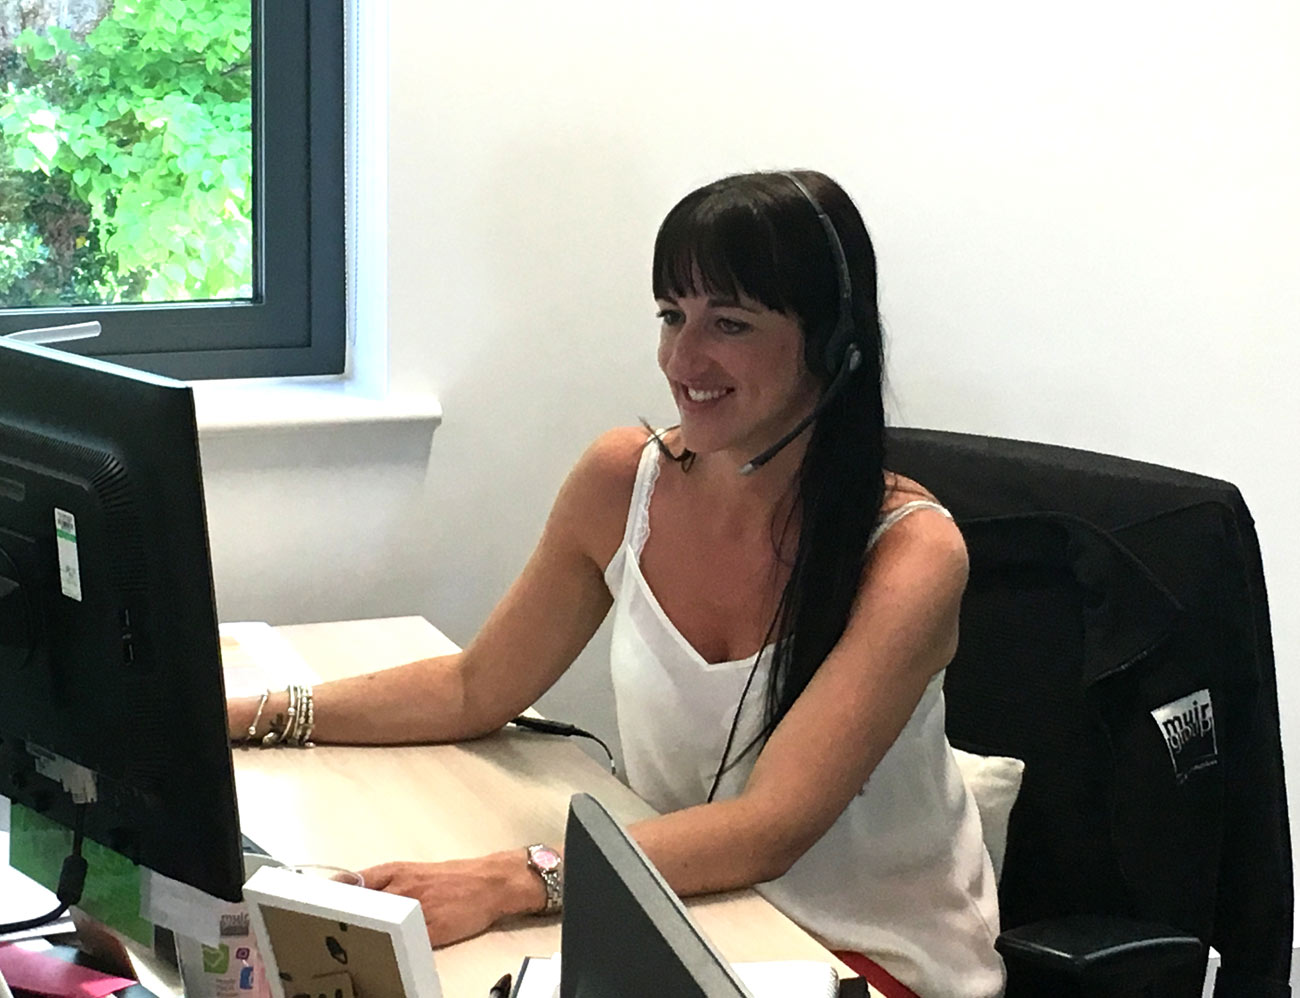 muir group housing association the friendly customer service team at muir is constantly working to answer queries and respond to any issues residents have